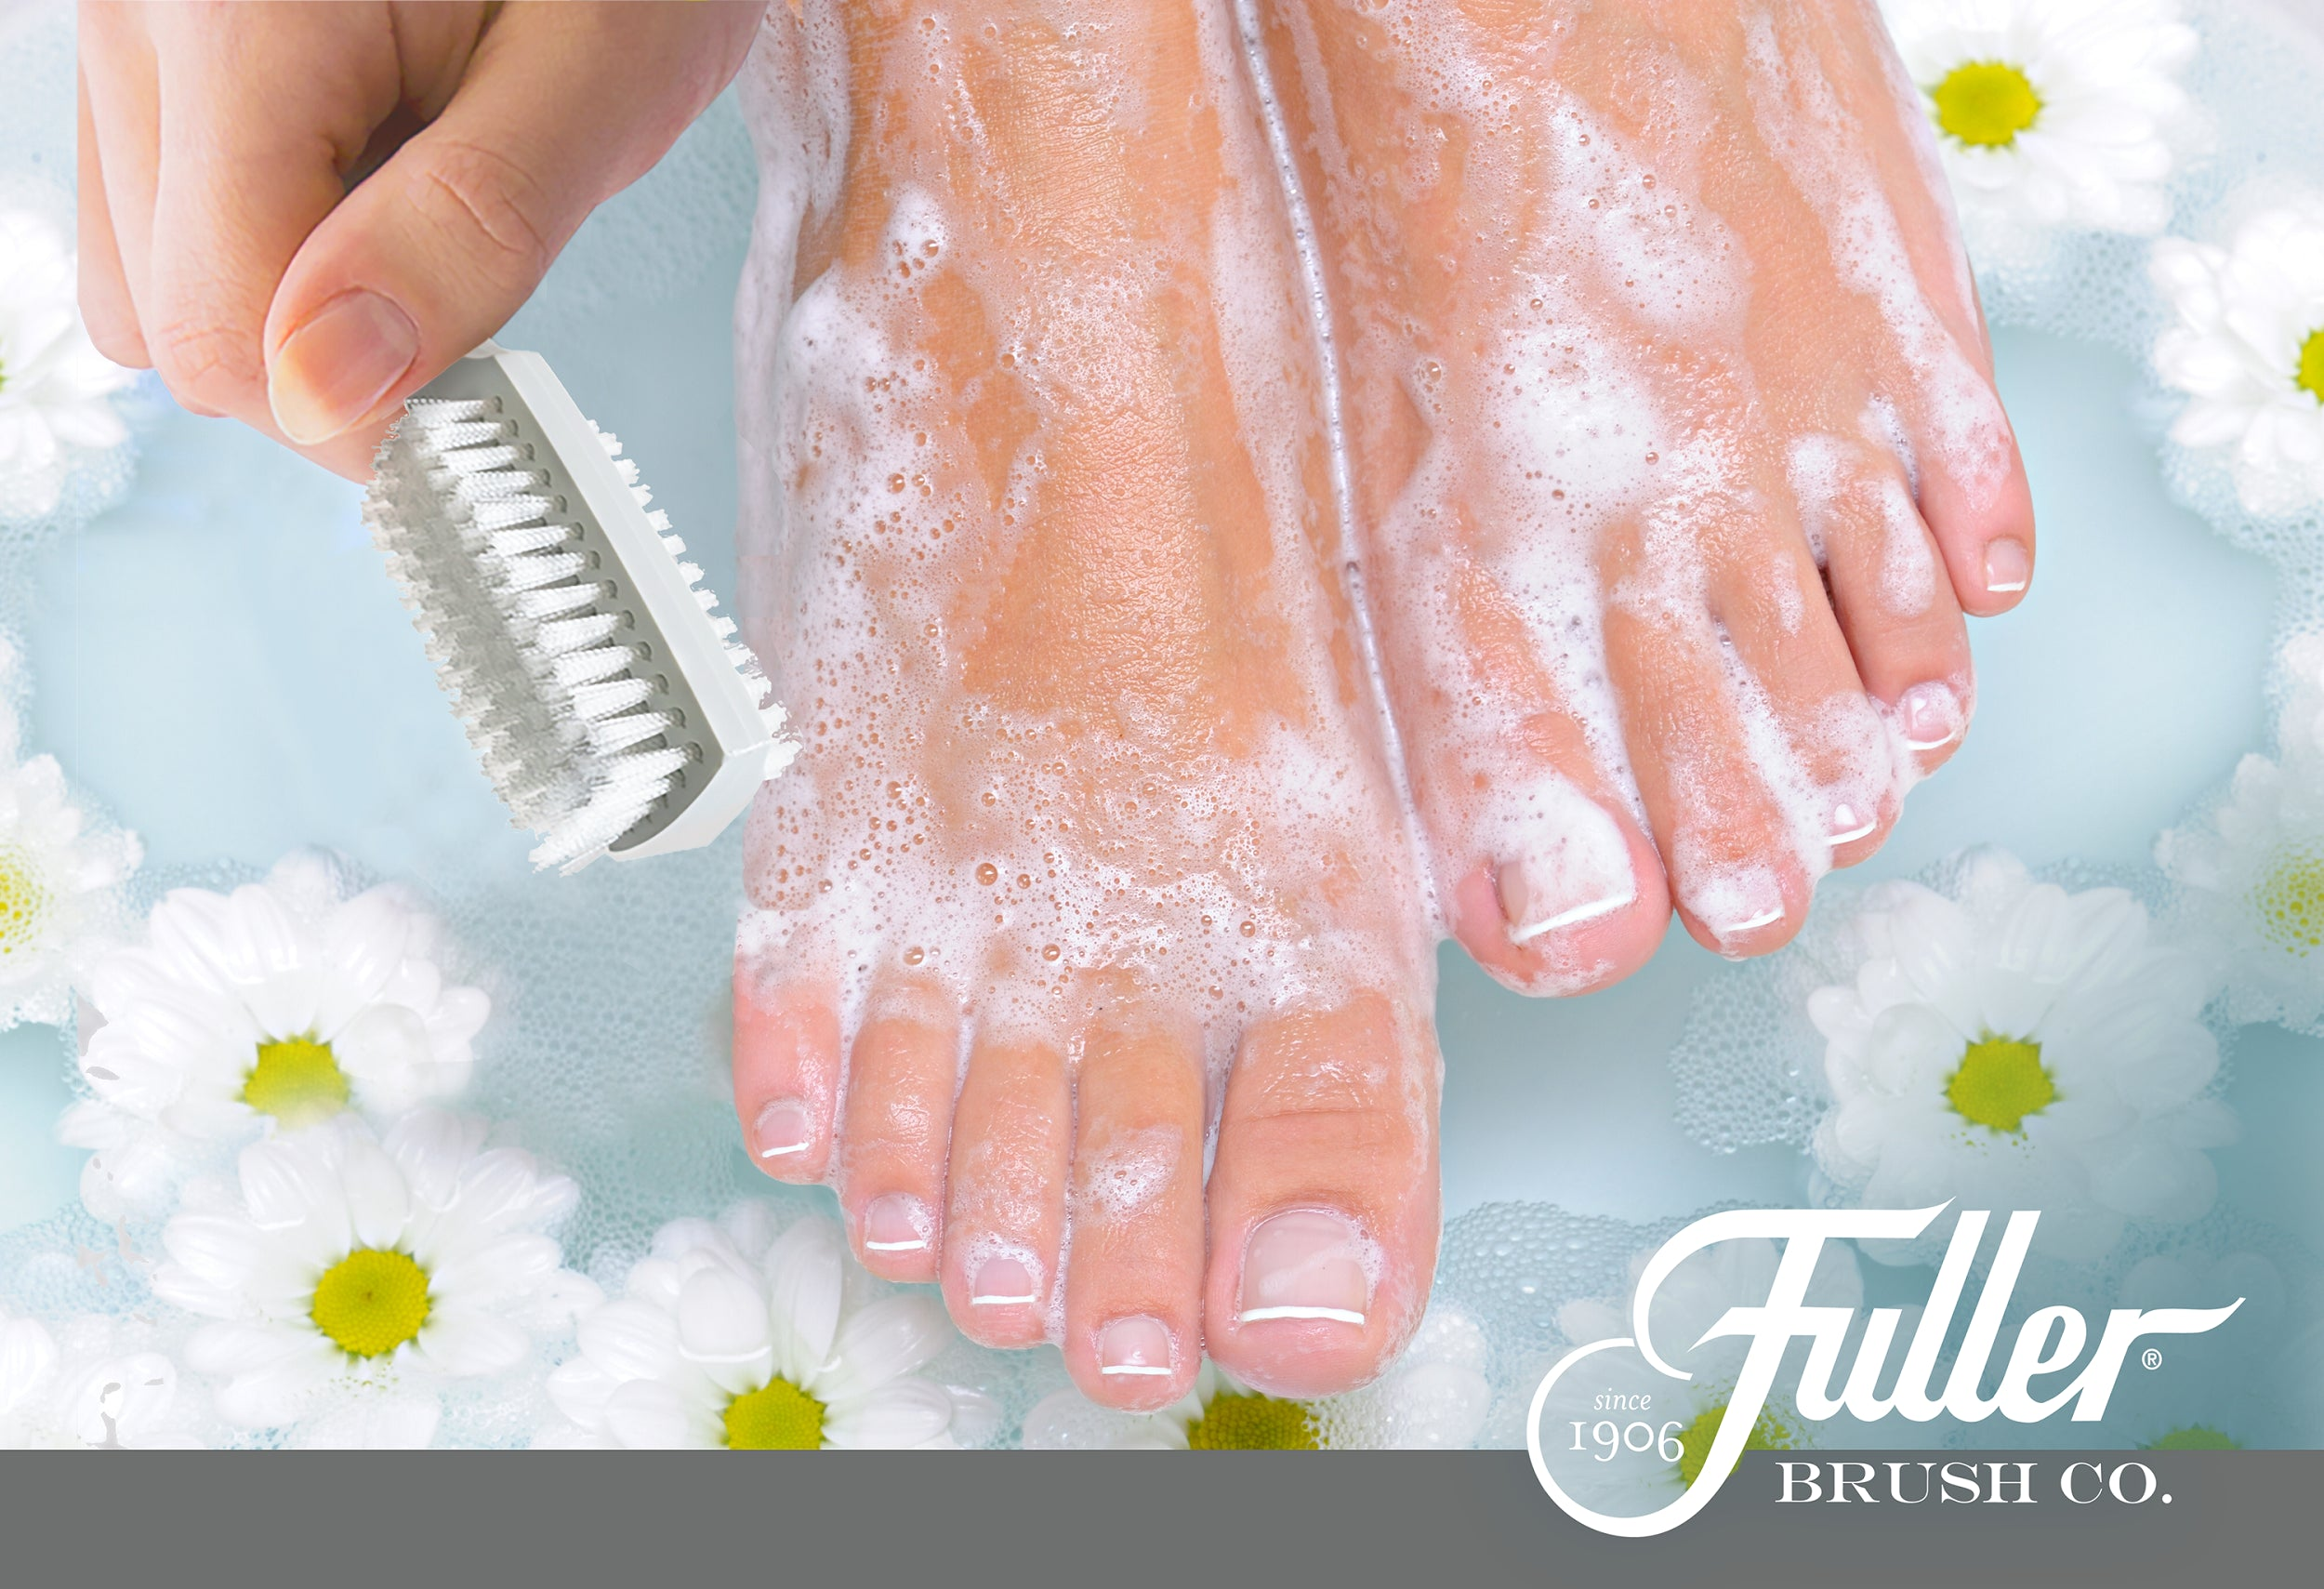 Hand & Nail Brush. Double Sides of Bristles Use Wet or Dry - Easy Hold Handle